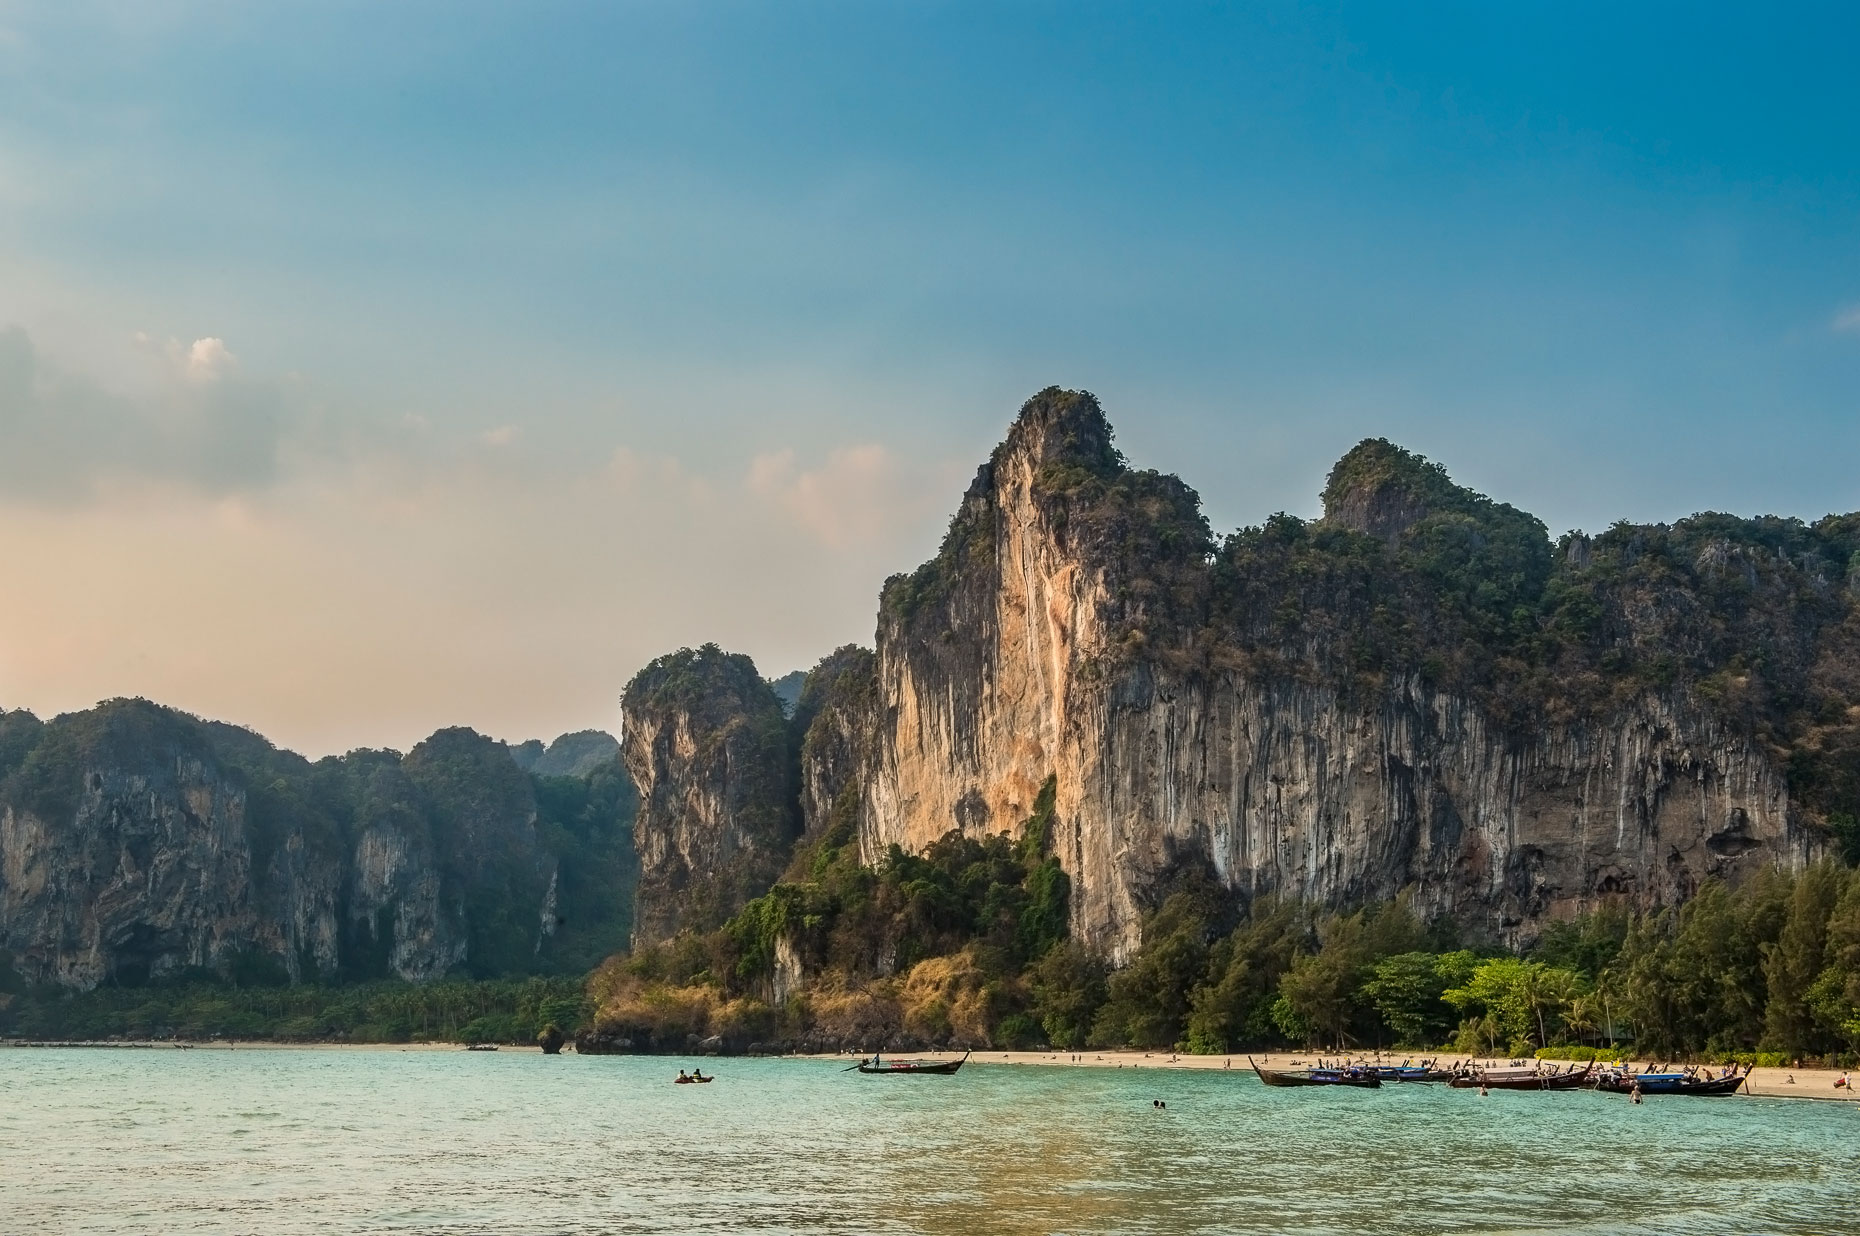 Landscape Photography -Landscape Railay Beach, Thailand